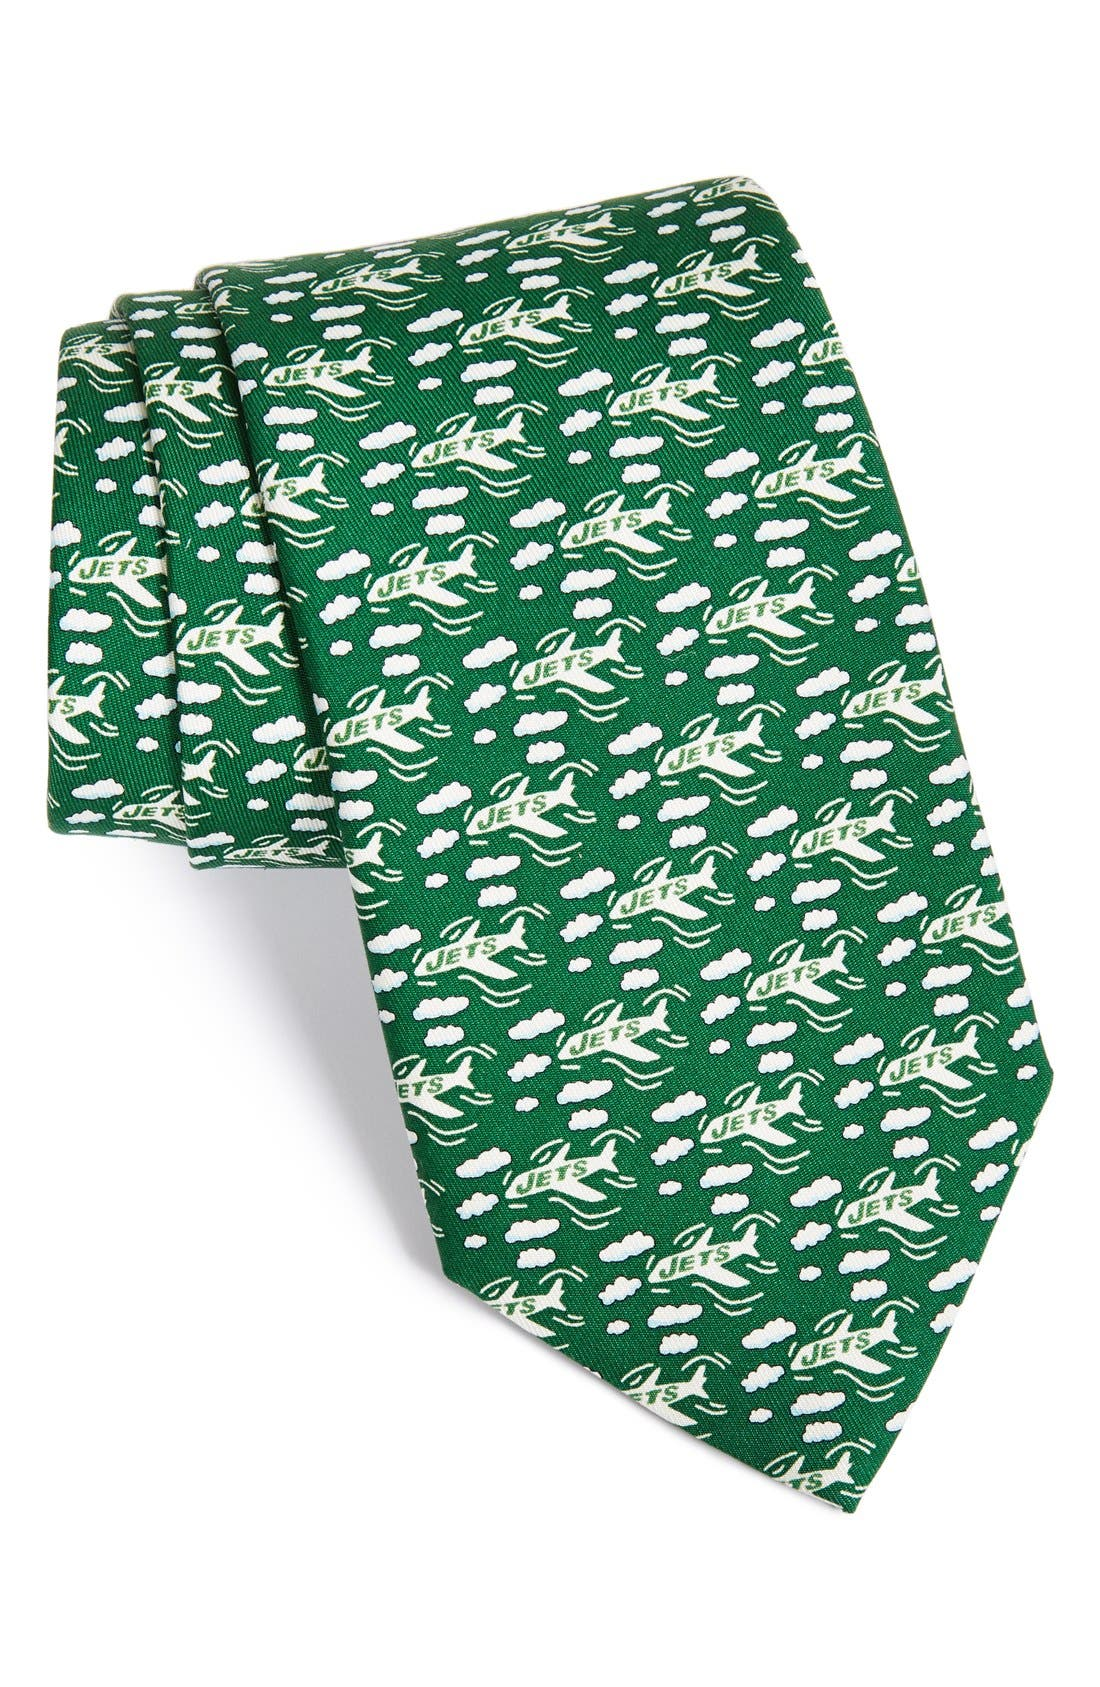 New York Jets - NFL Woven Silk Tie,                             Main thumbnail 1, color,